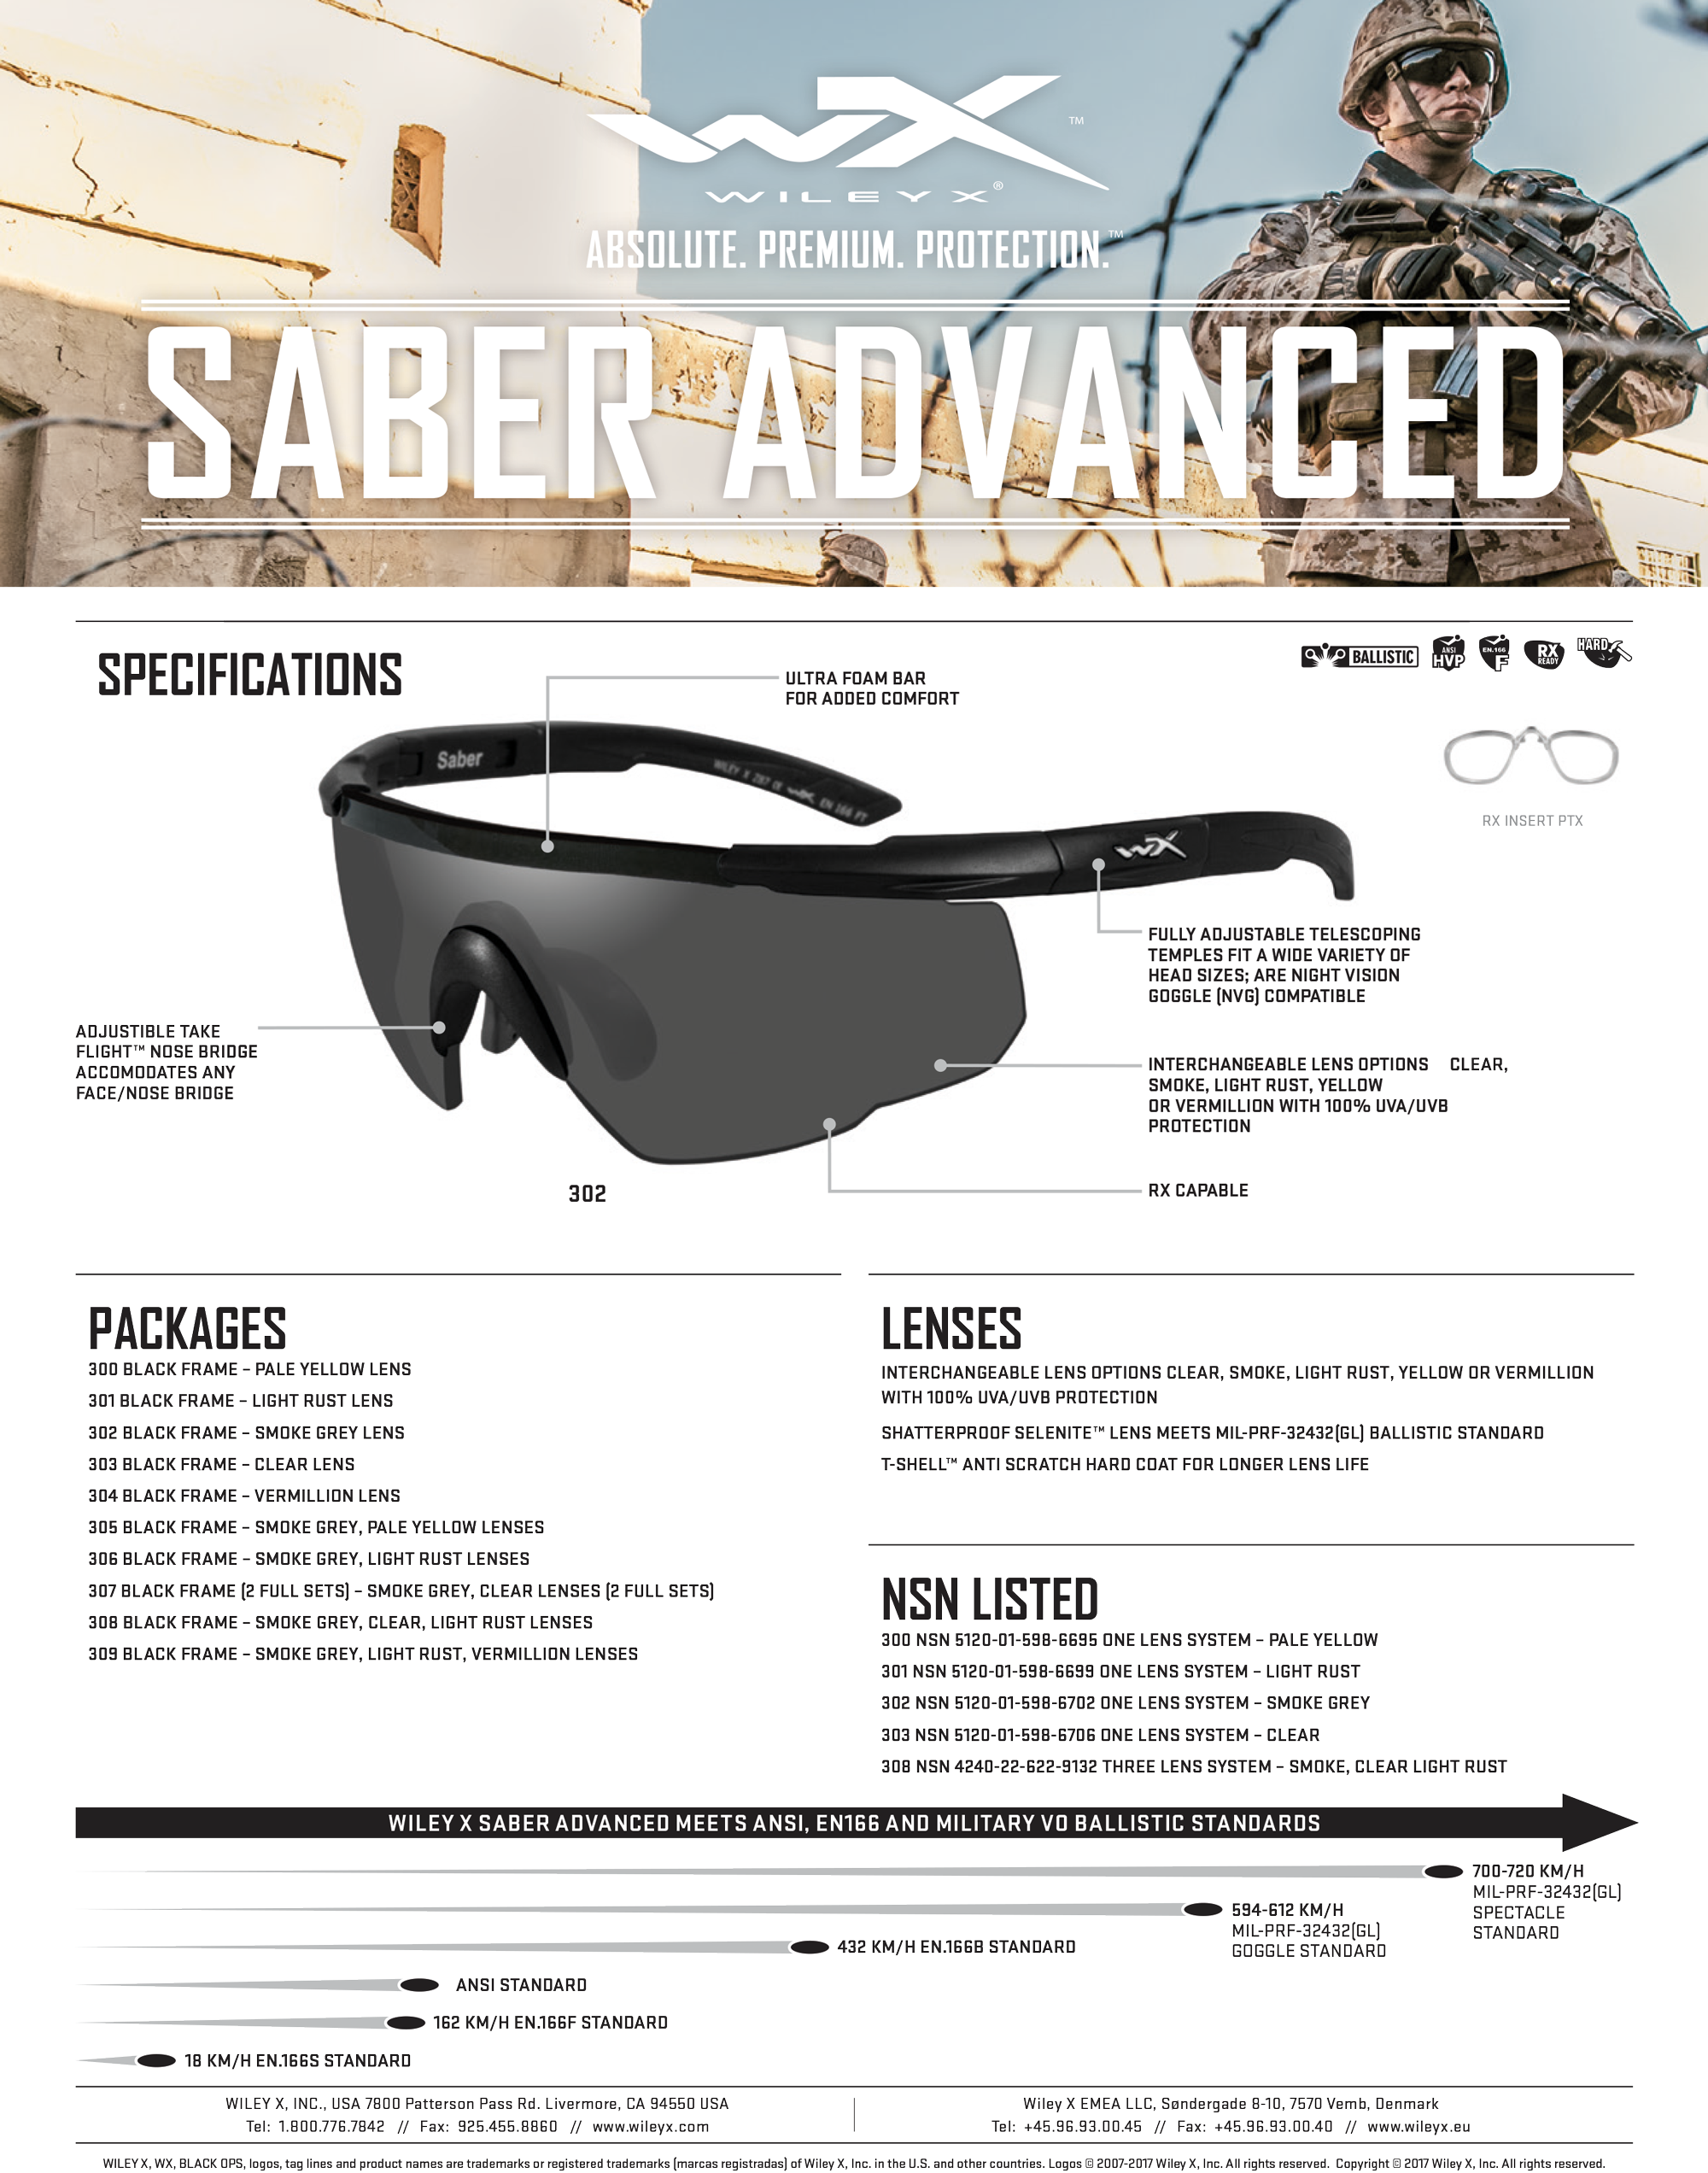 Saber-adv-Specification-Sheet.png